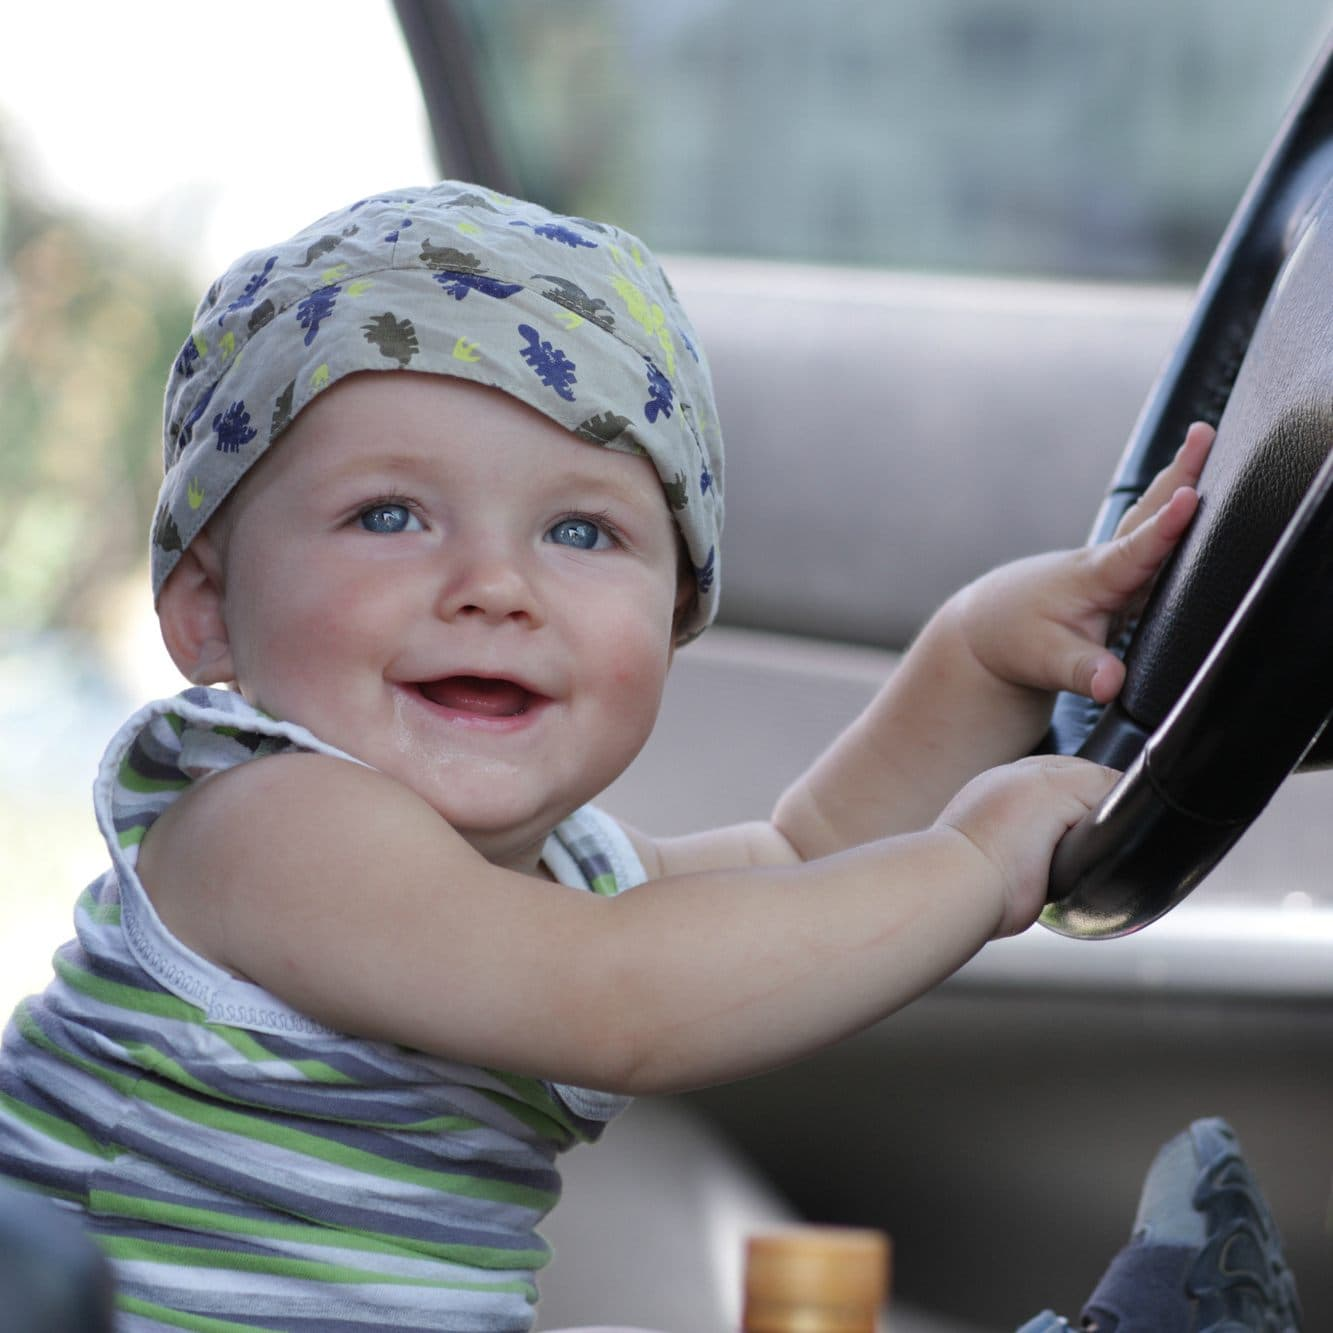 64823fc94989 7 Helpful Tips for a Road Trip with a Baby or Toddler - TravelMamas.com